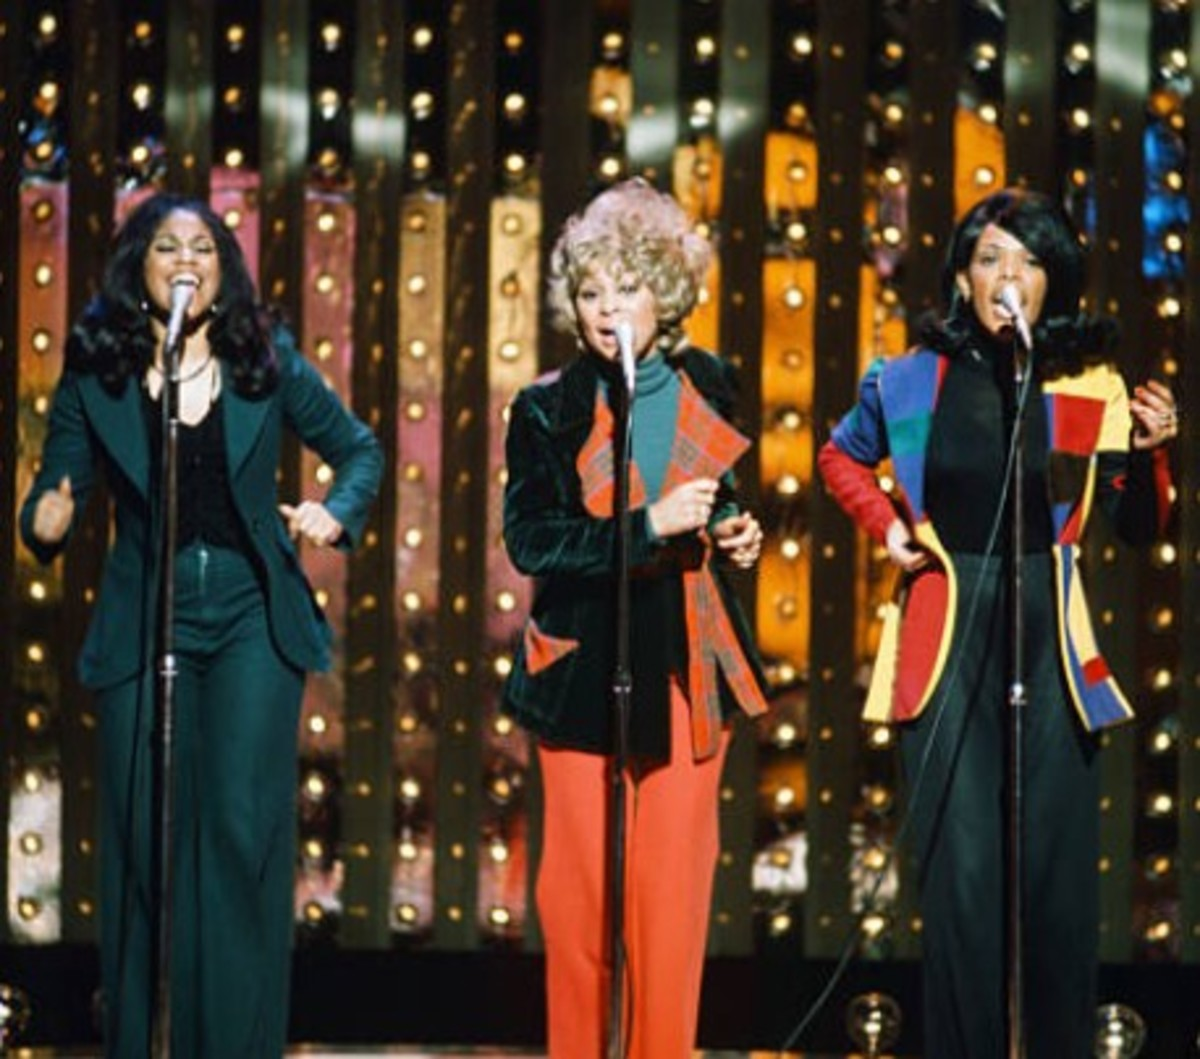 Edna Wright, center, left Shellie Clark, right Carolyn Willis, on NBC's The Midnight Special, photo by Fred Sabine, Getty Images